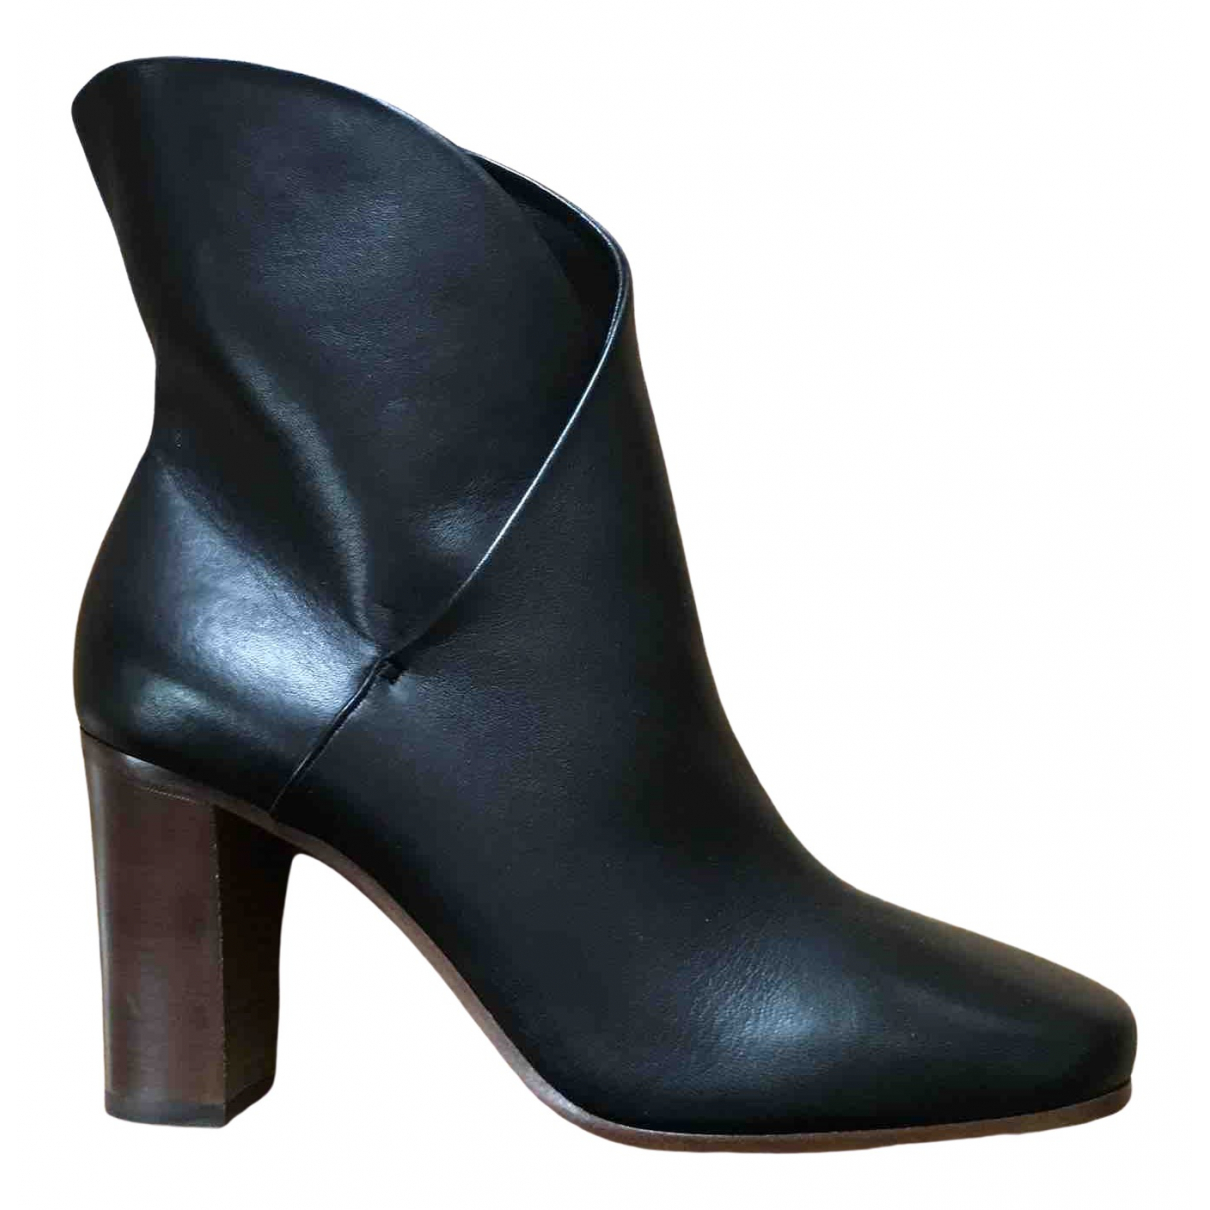 Celine \N Black Leather Ankle boots for Women 38 EU